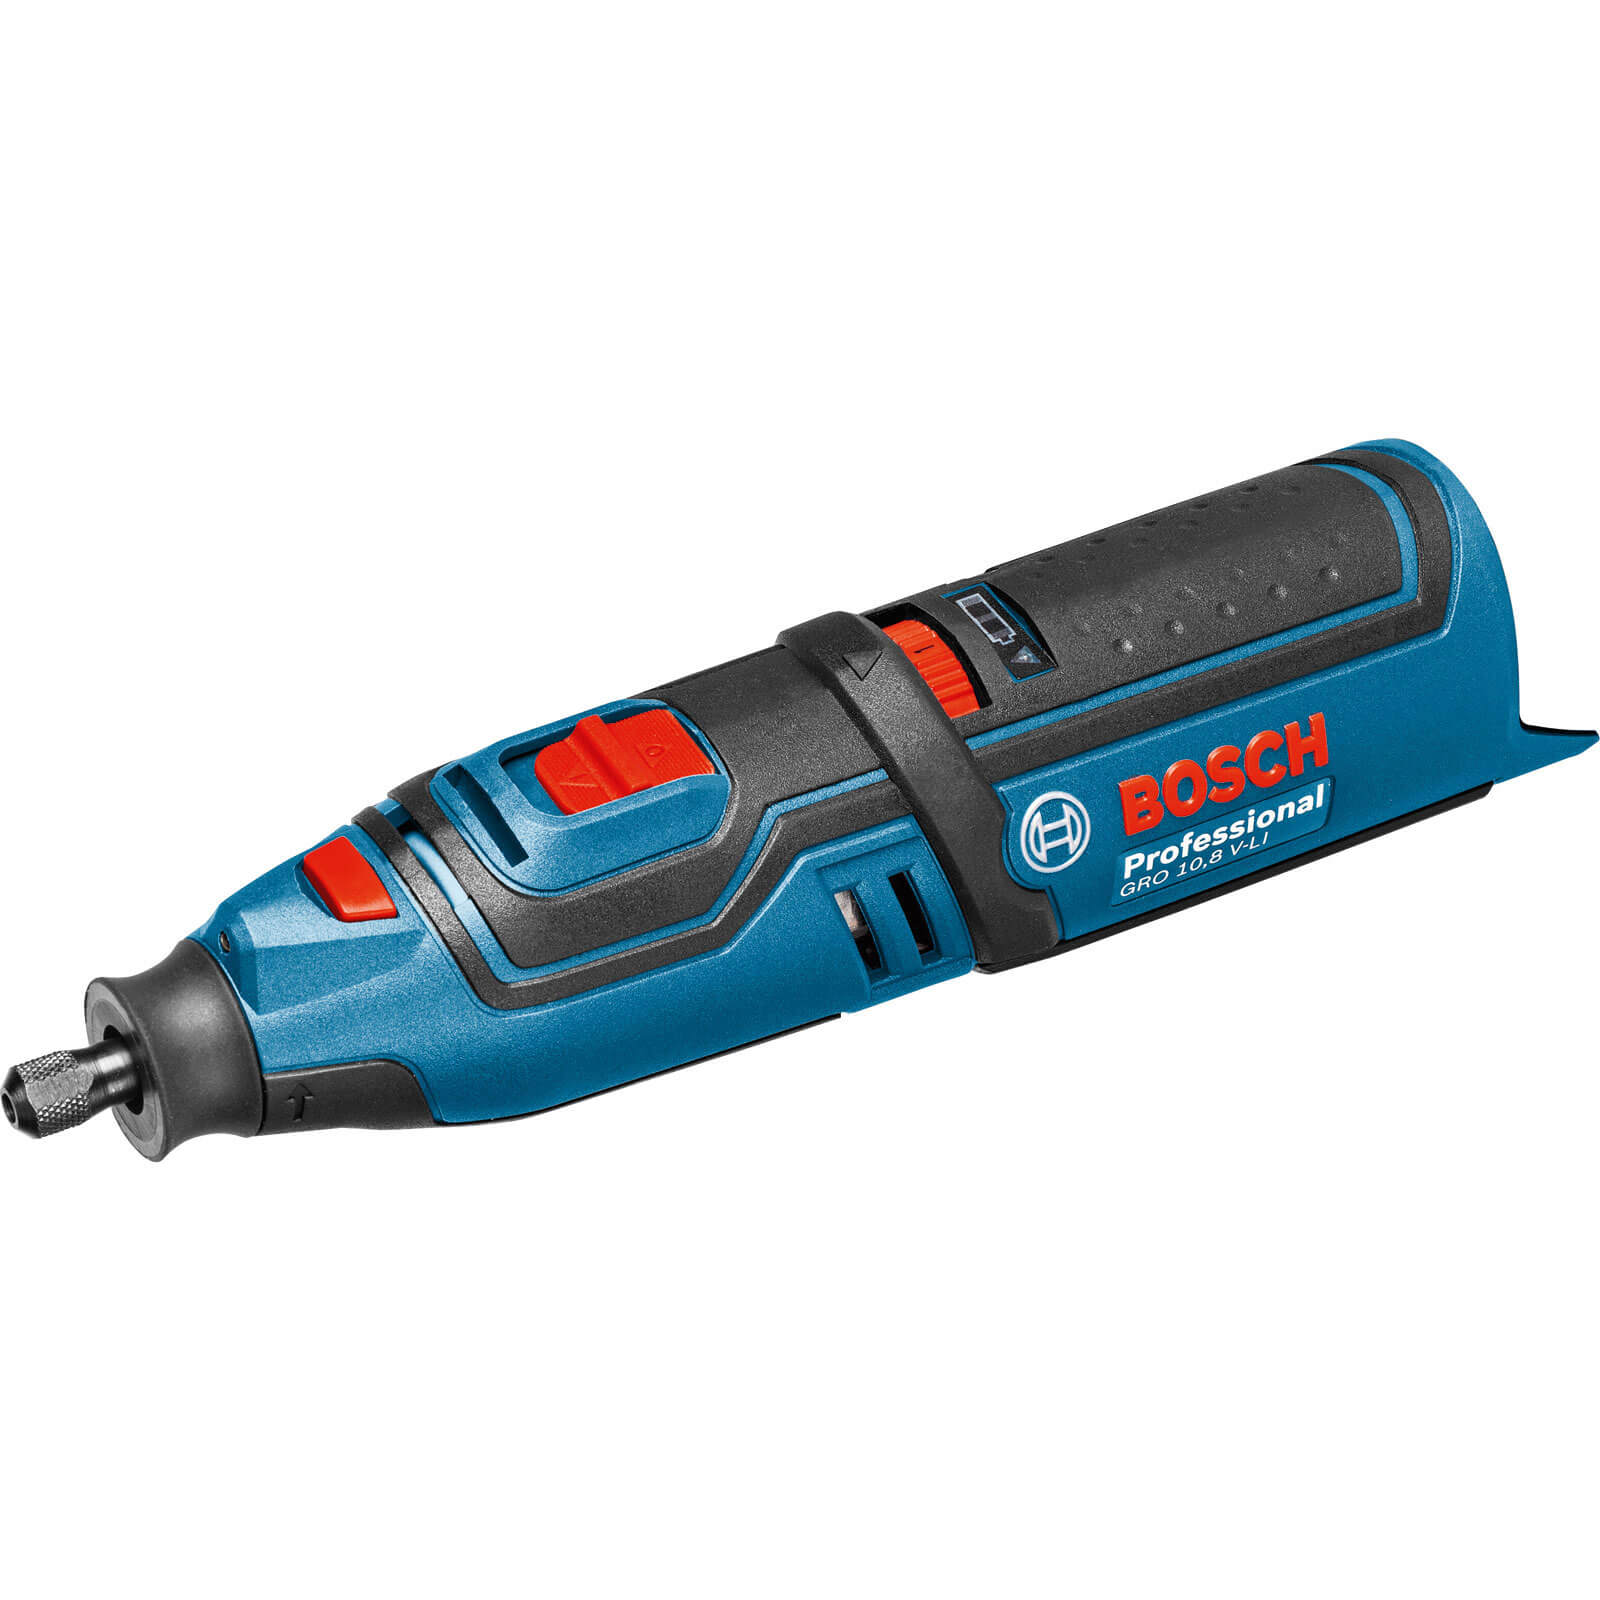 Bosch GRO 10.8 VLI 10.8v Cordless Rotary Multi Tool No Batteries No Charger No Case